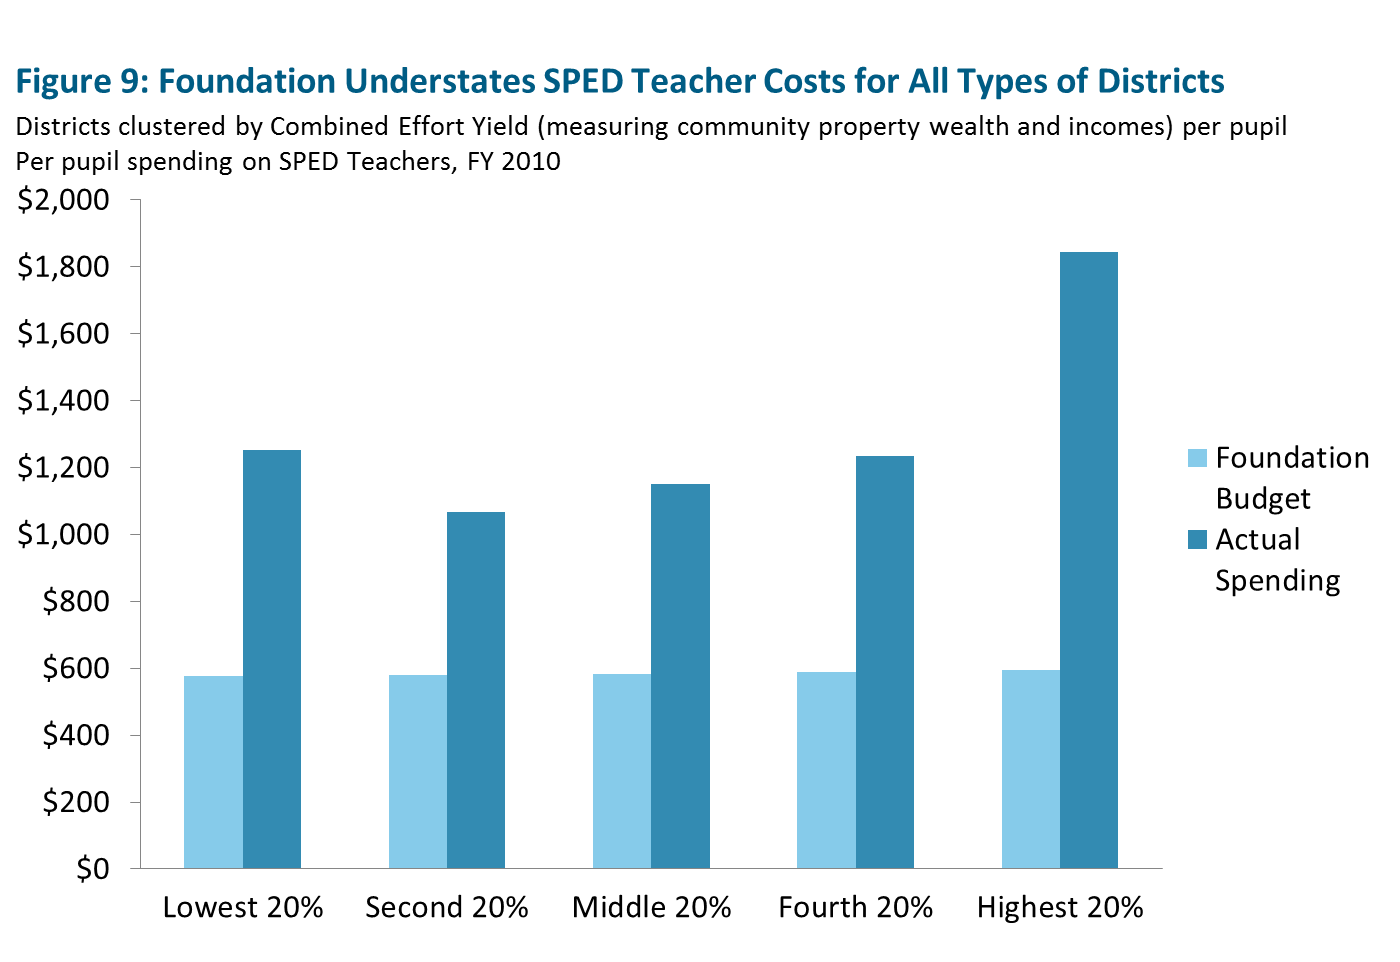 Foundation Understates SPED Teacher Costs for All Types of Districts